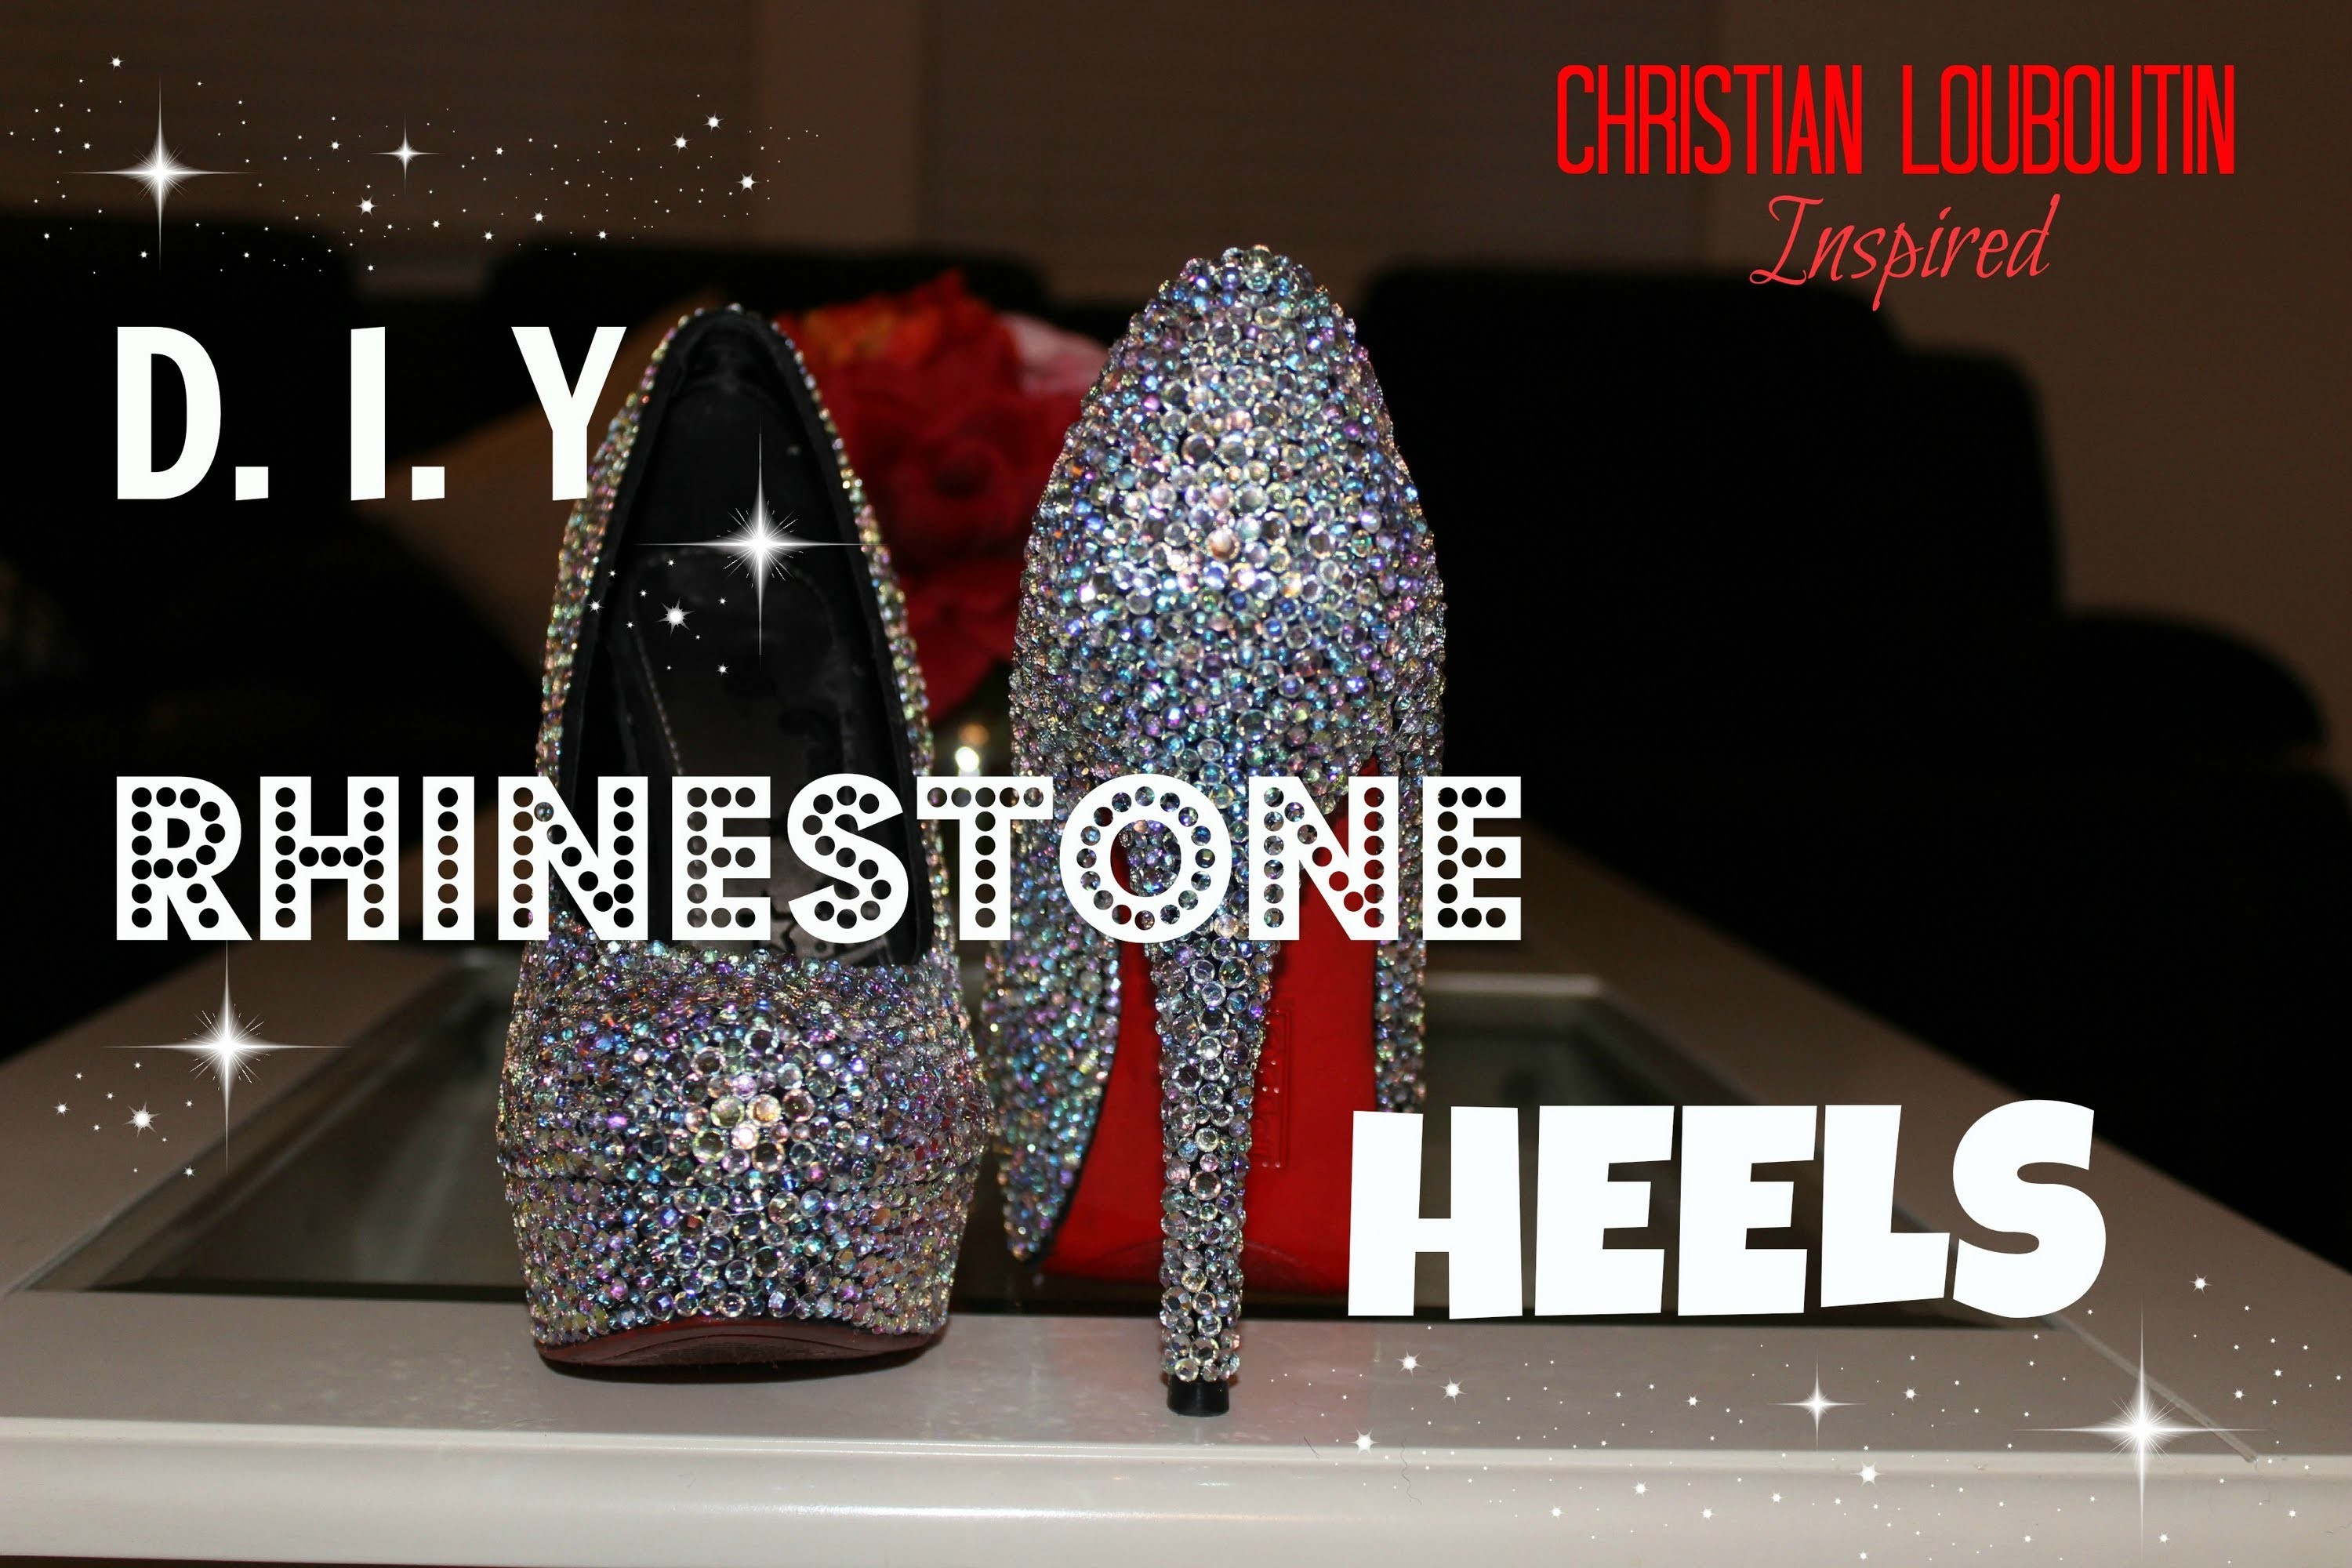 DIY Rhinestone. Strass Heels! | Christian Louboutin Inspired + Channel Shoutouts!